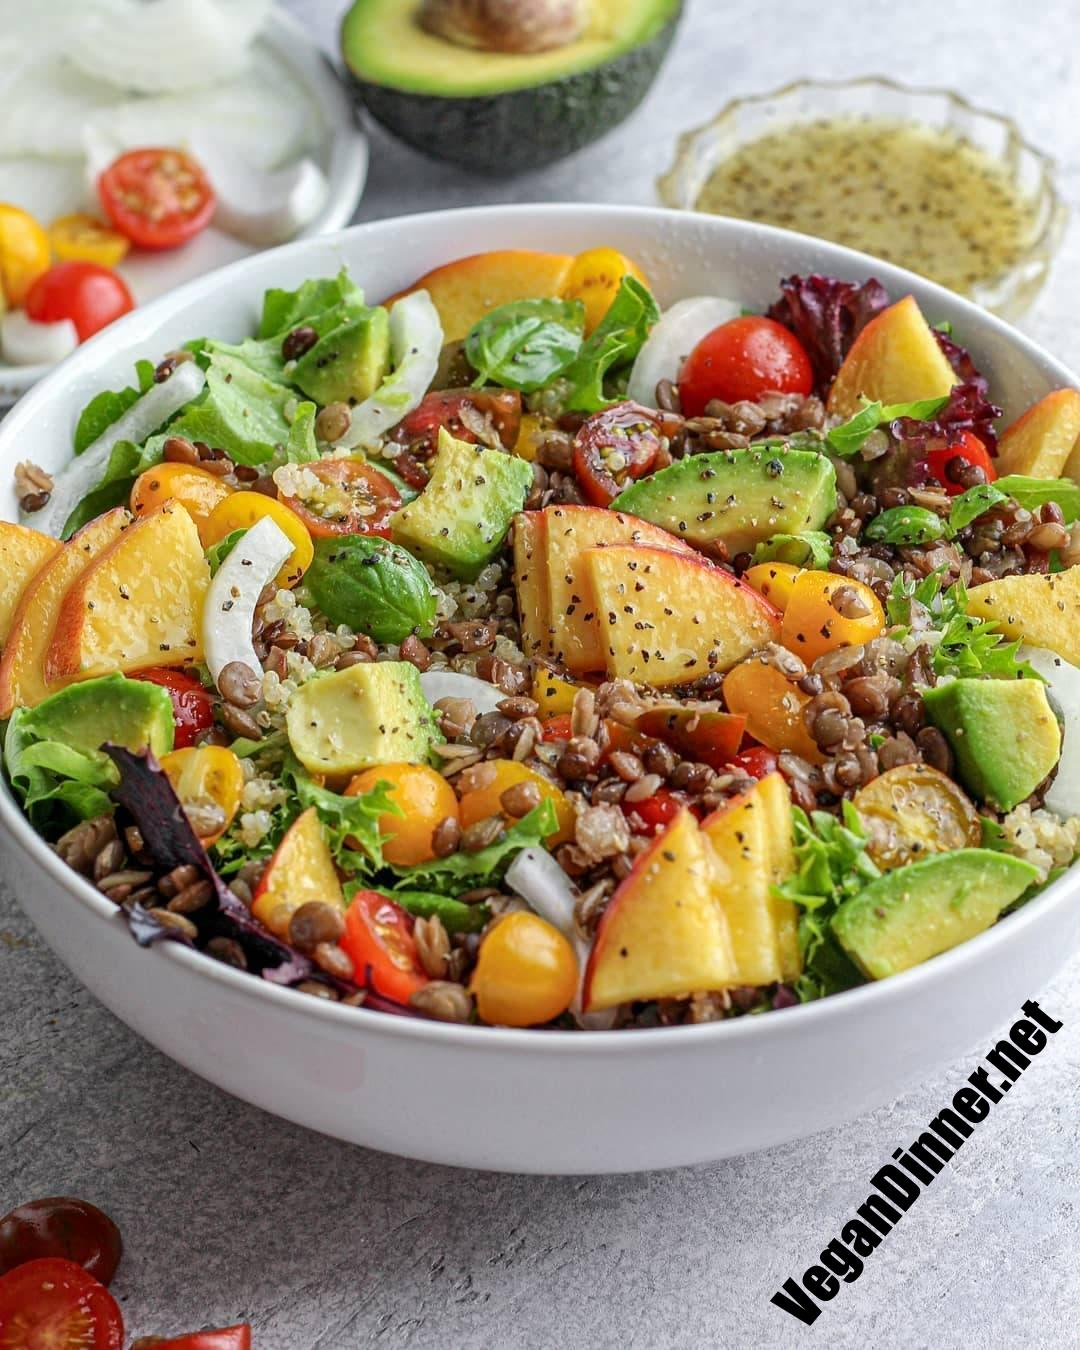 have you tried this peach & avocado salad with quinoa lenti display image dfff